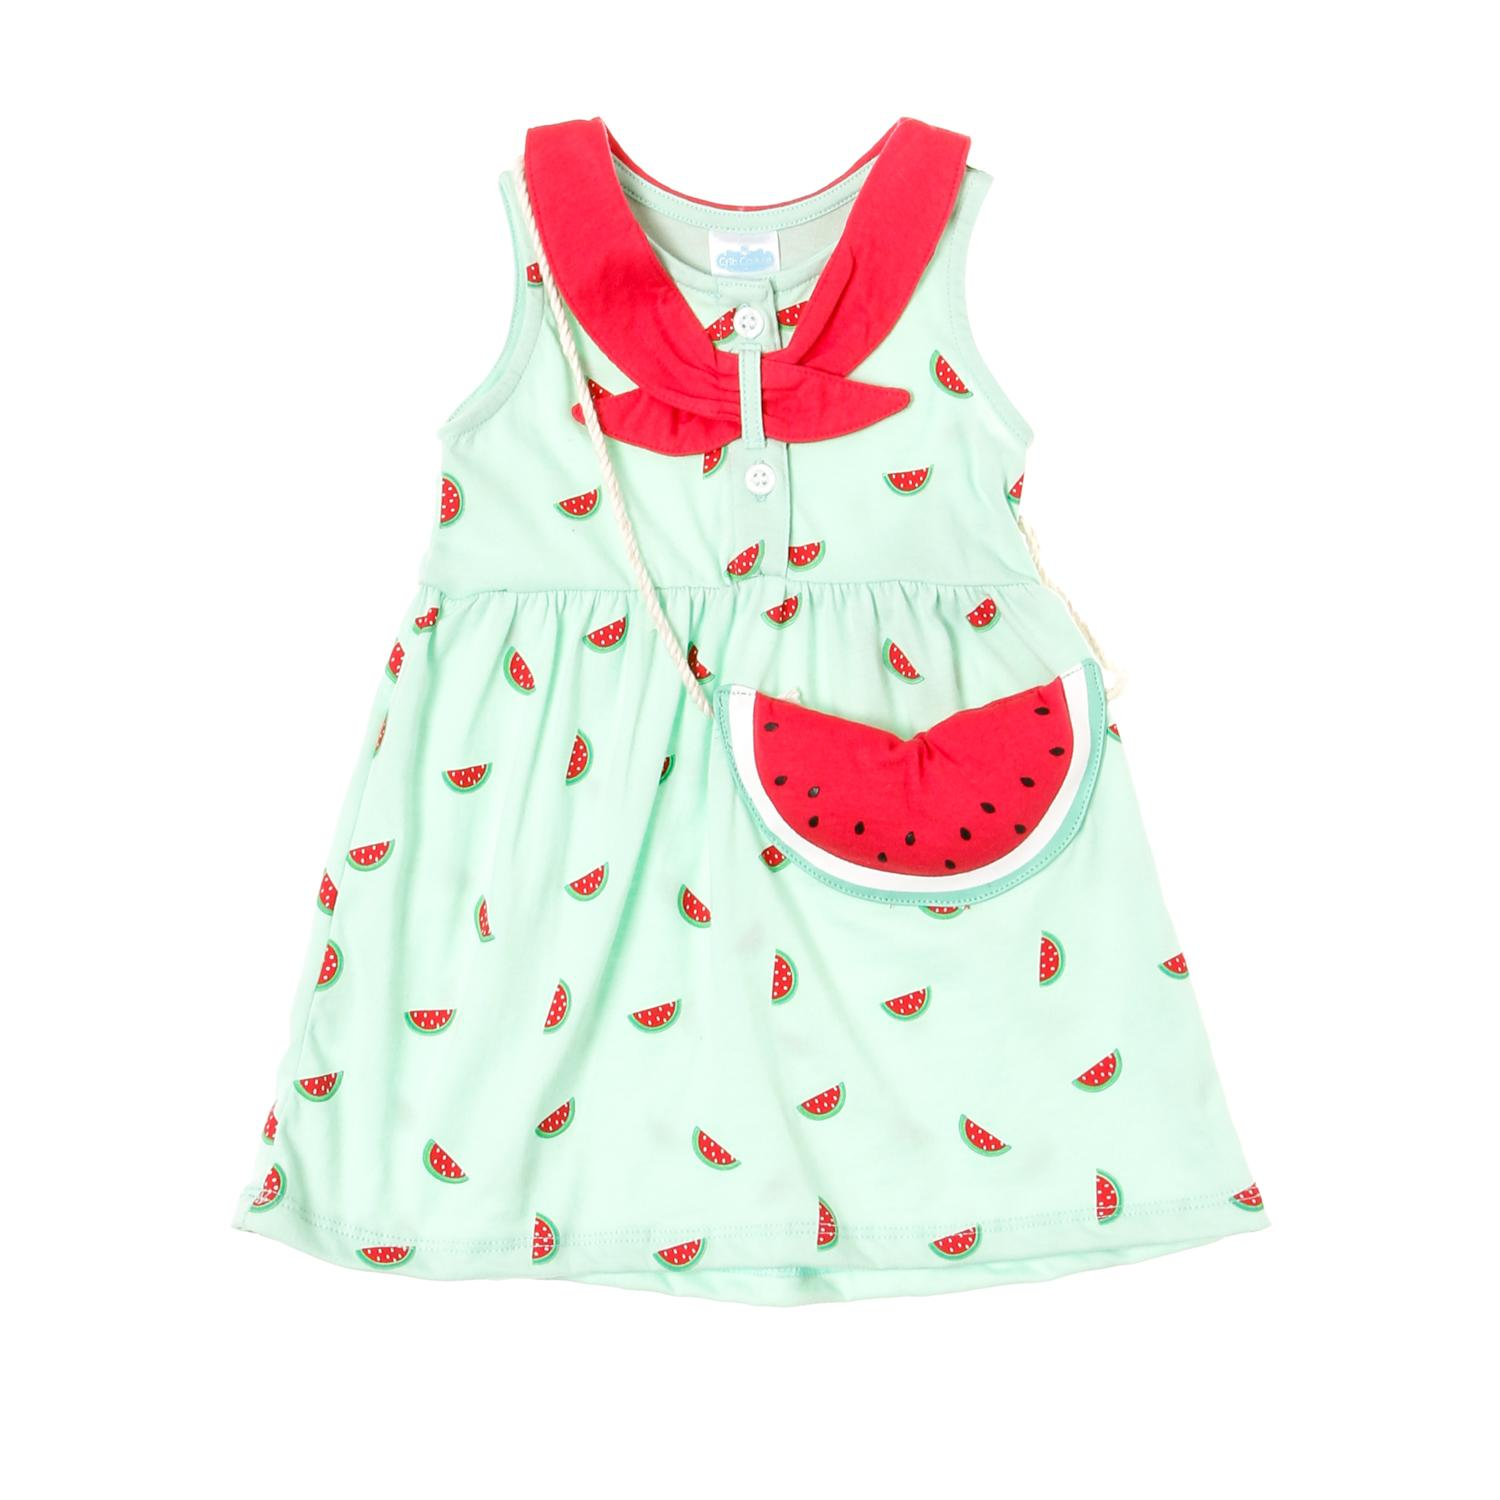 Crib Couture Baby Girls Watermelon Bag Pocket Dress In Green By The Sm Store.